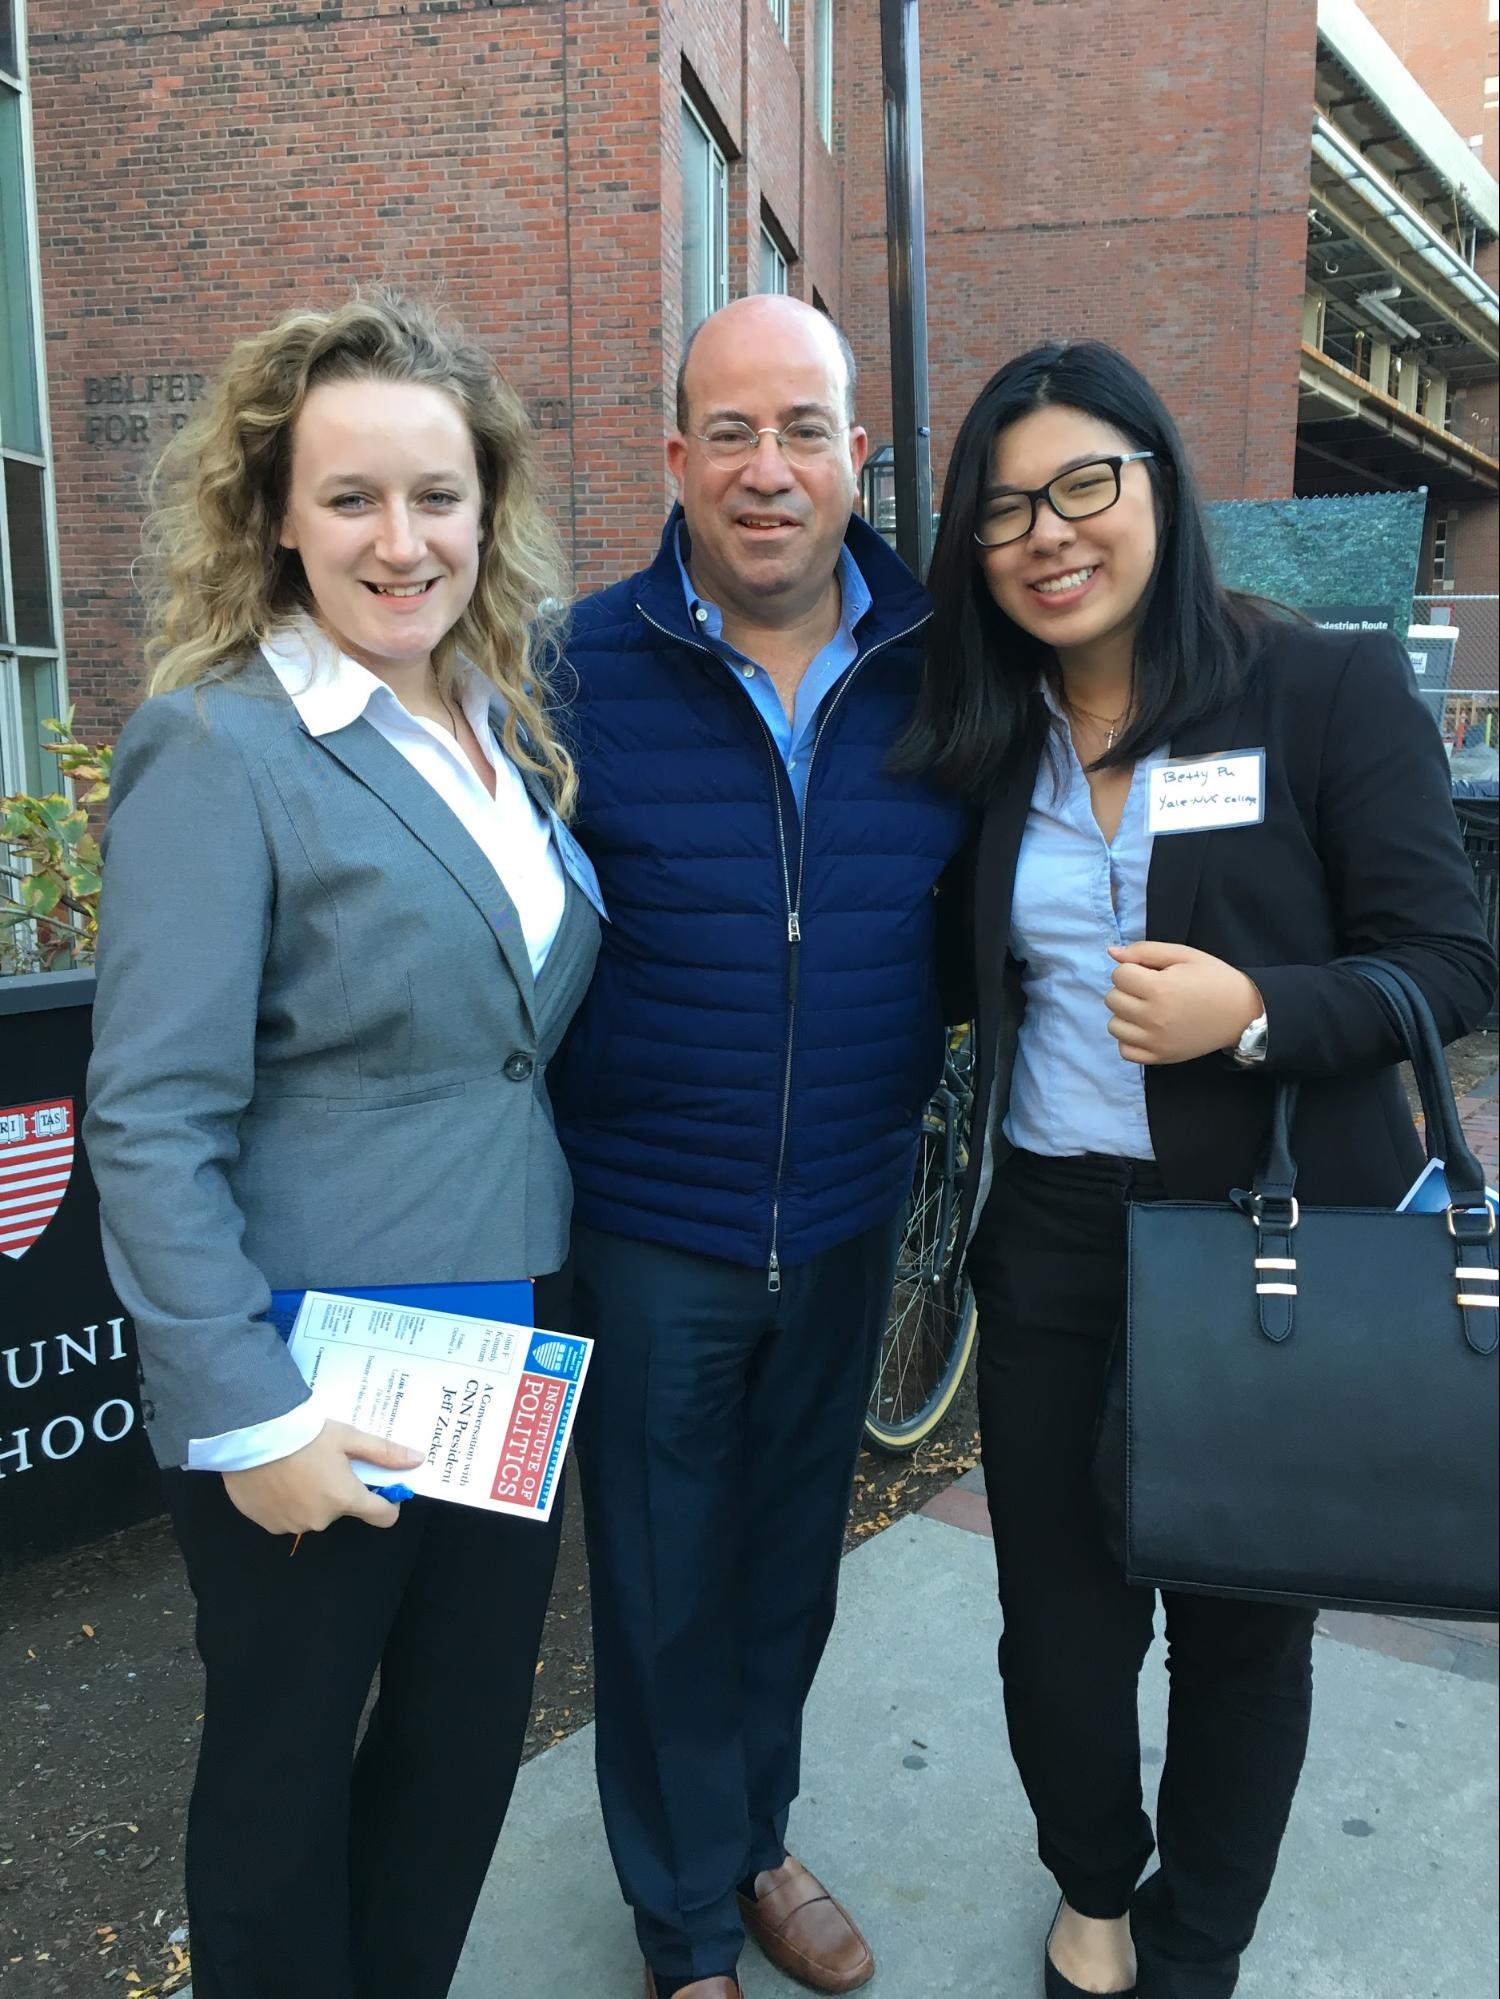 Chandler Beyer '20 & Betty Pu '20 with Jeff Zucker, President of CNN